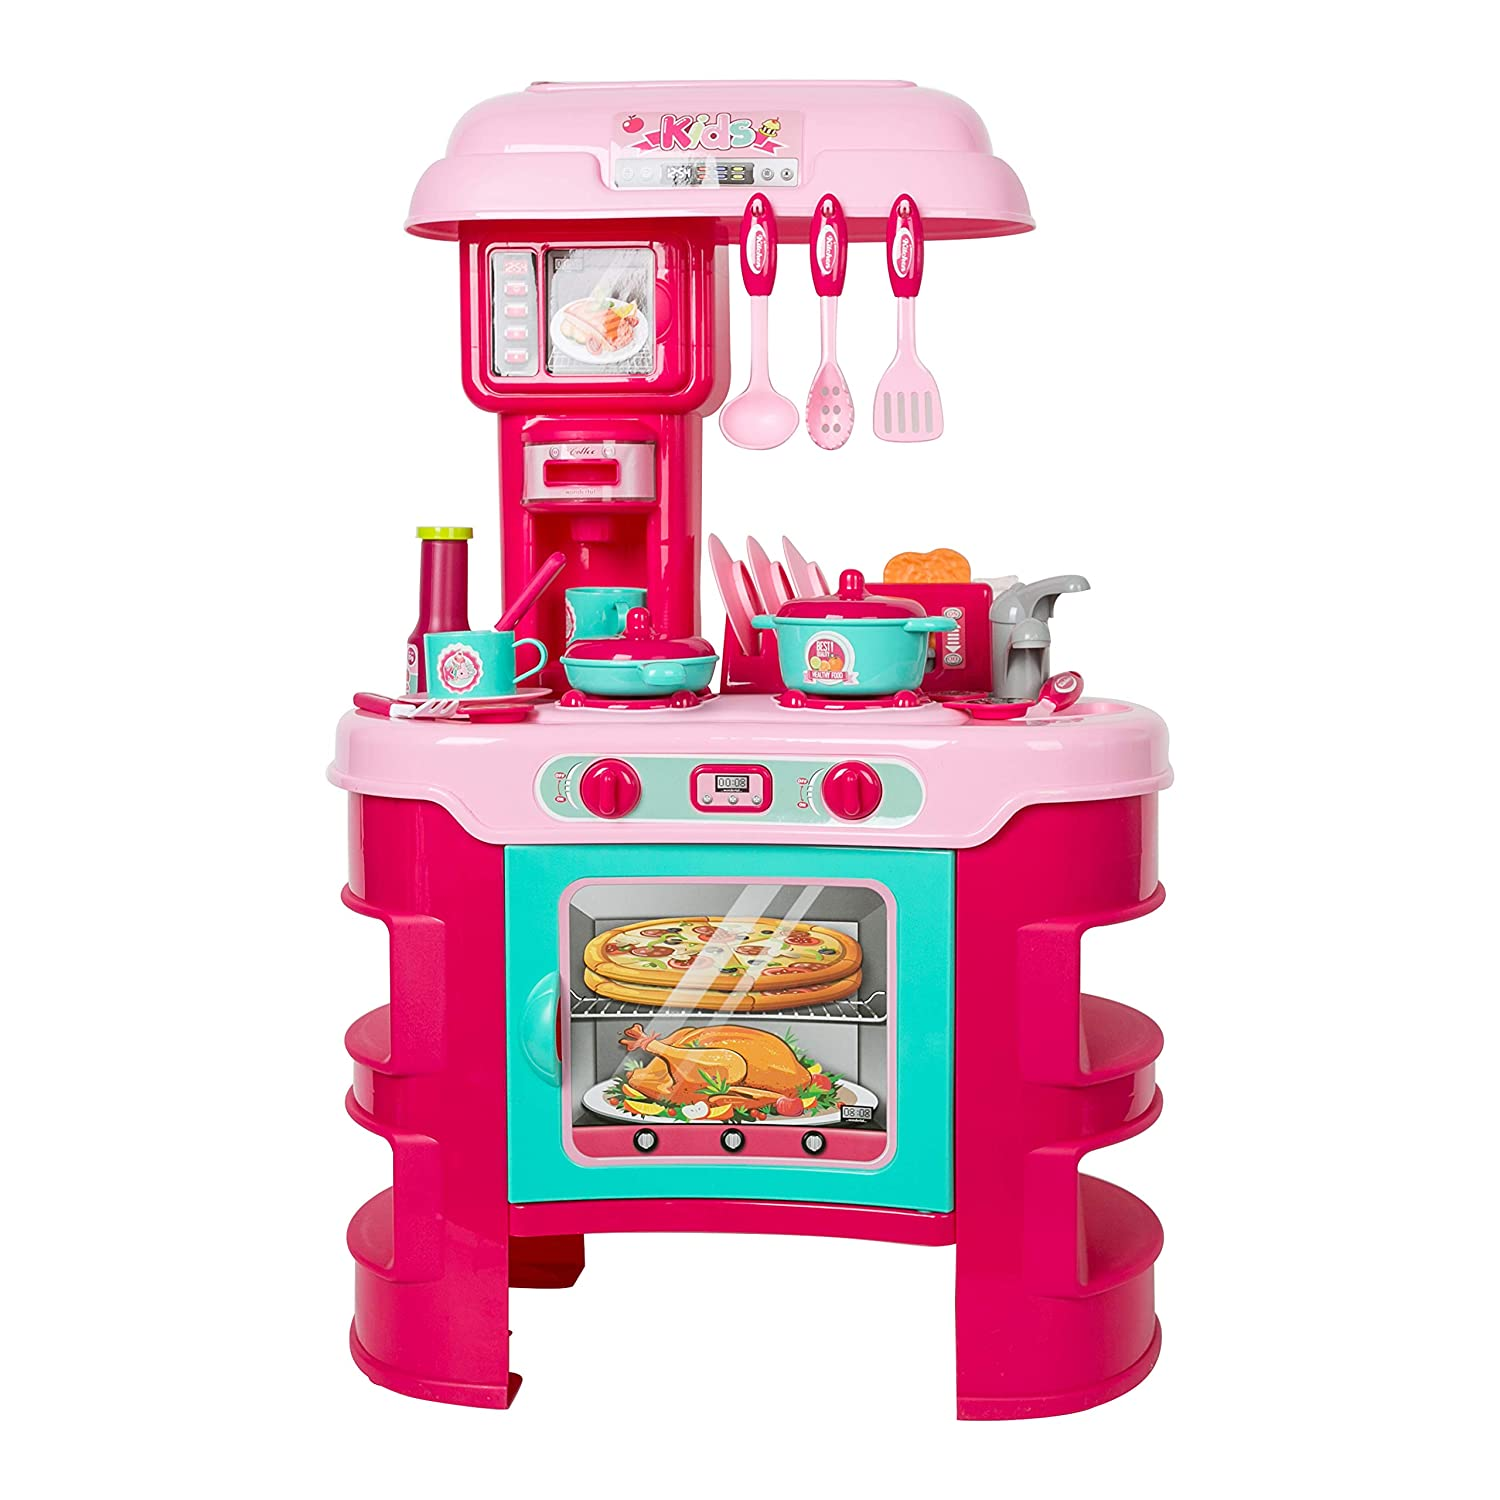 KARMAS PRODUCT Kitchen Playset,Pretend Play Cooking Includes Oven Microwave 28PCS Kitchen Accessories Set with Realistic Lights & Sounds for Kids (Pink)